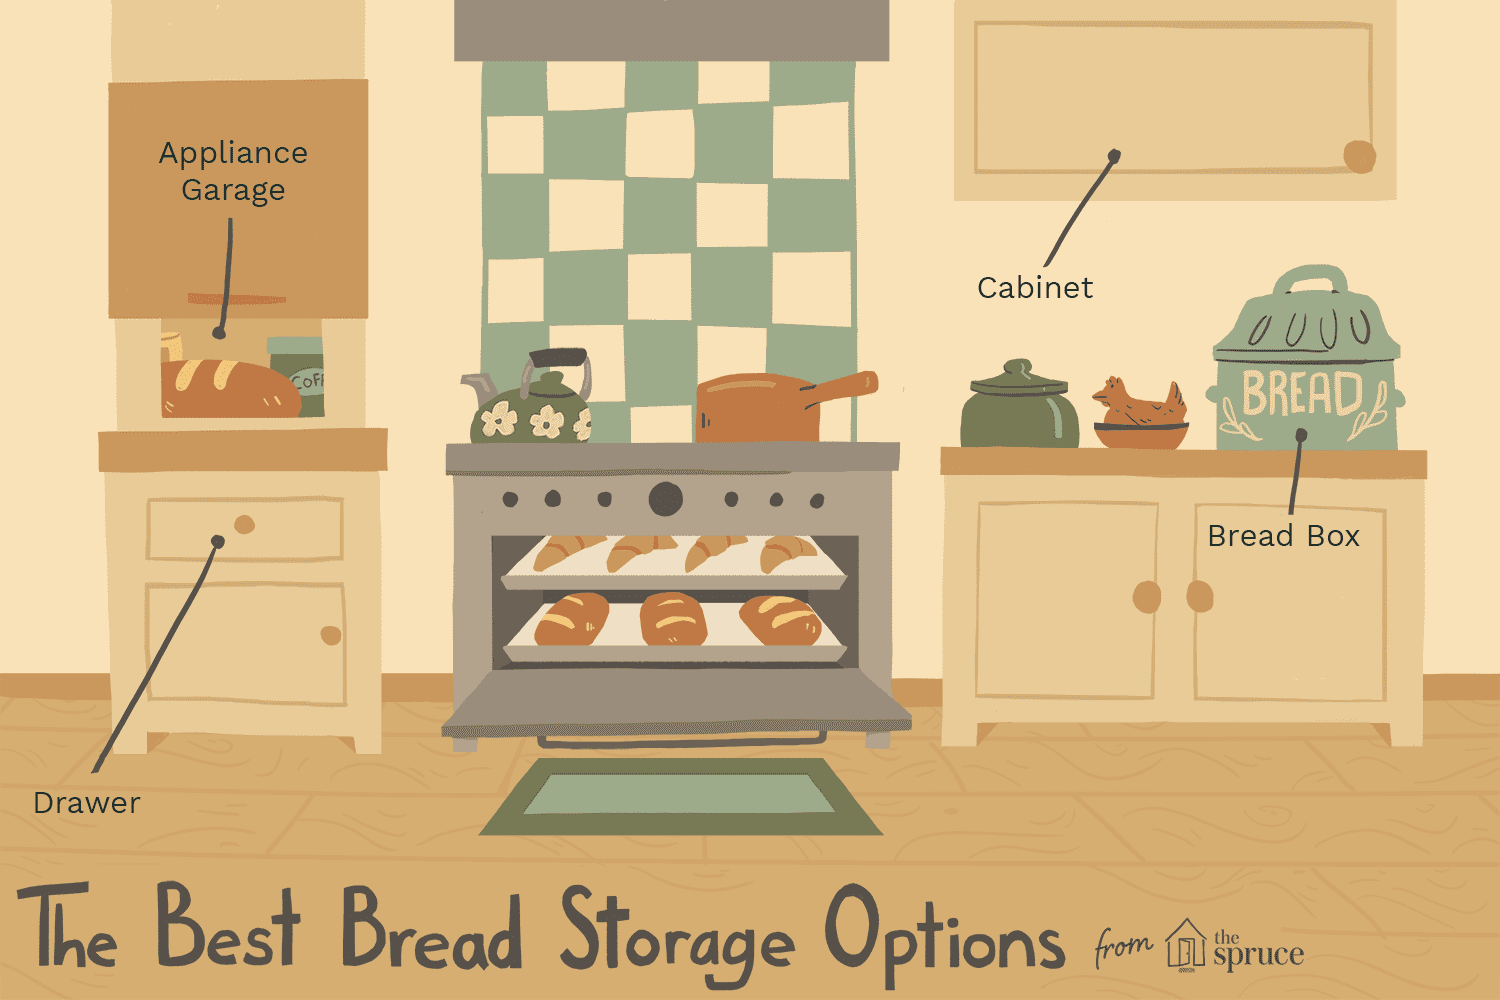 The Best Bread Storage Options